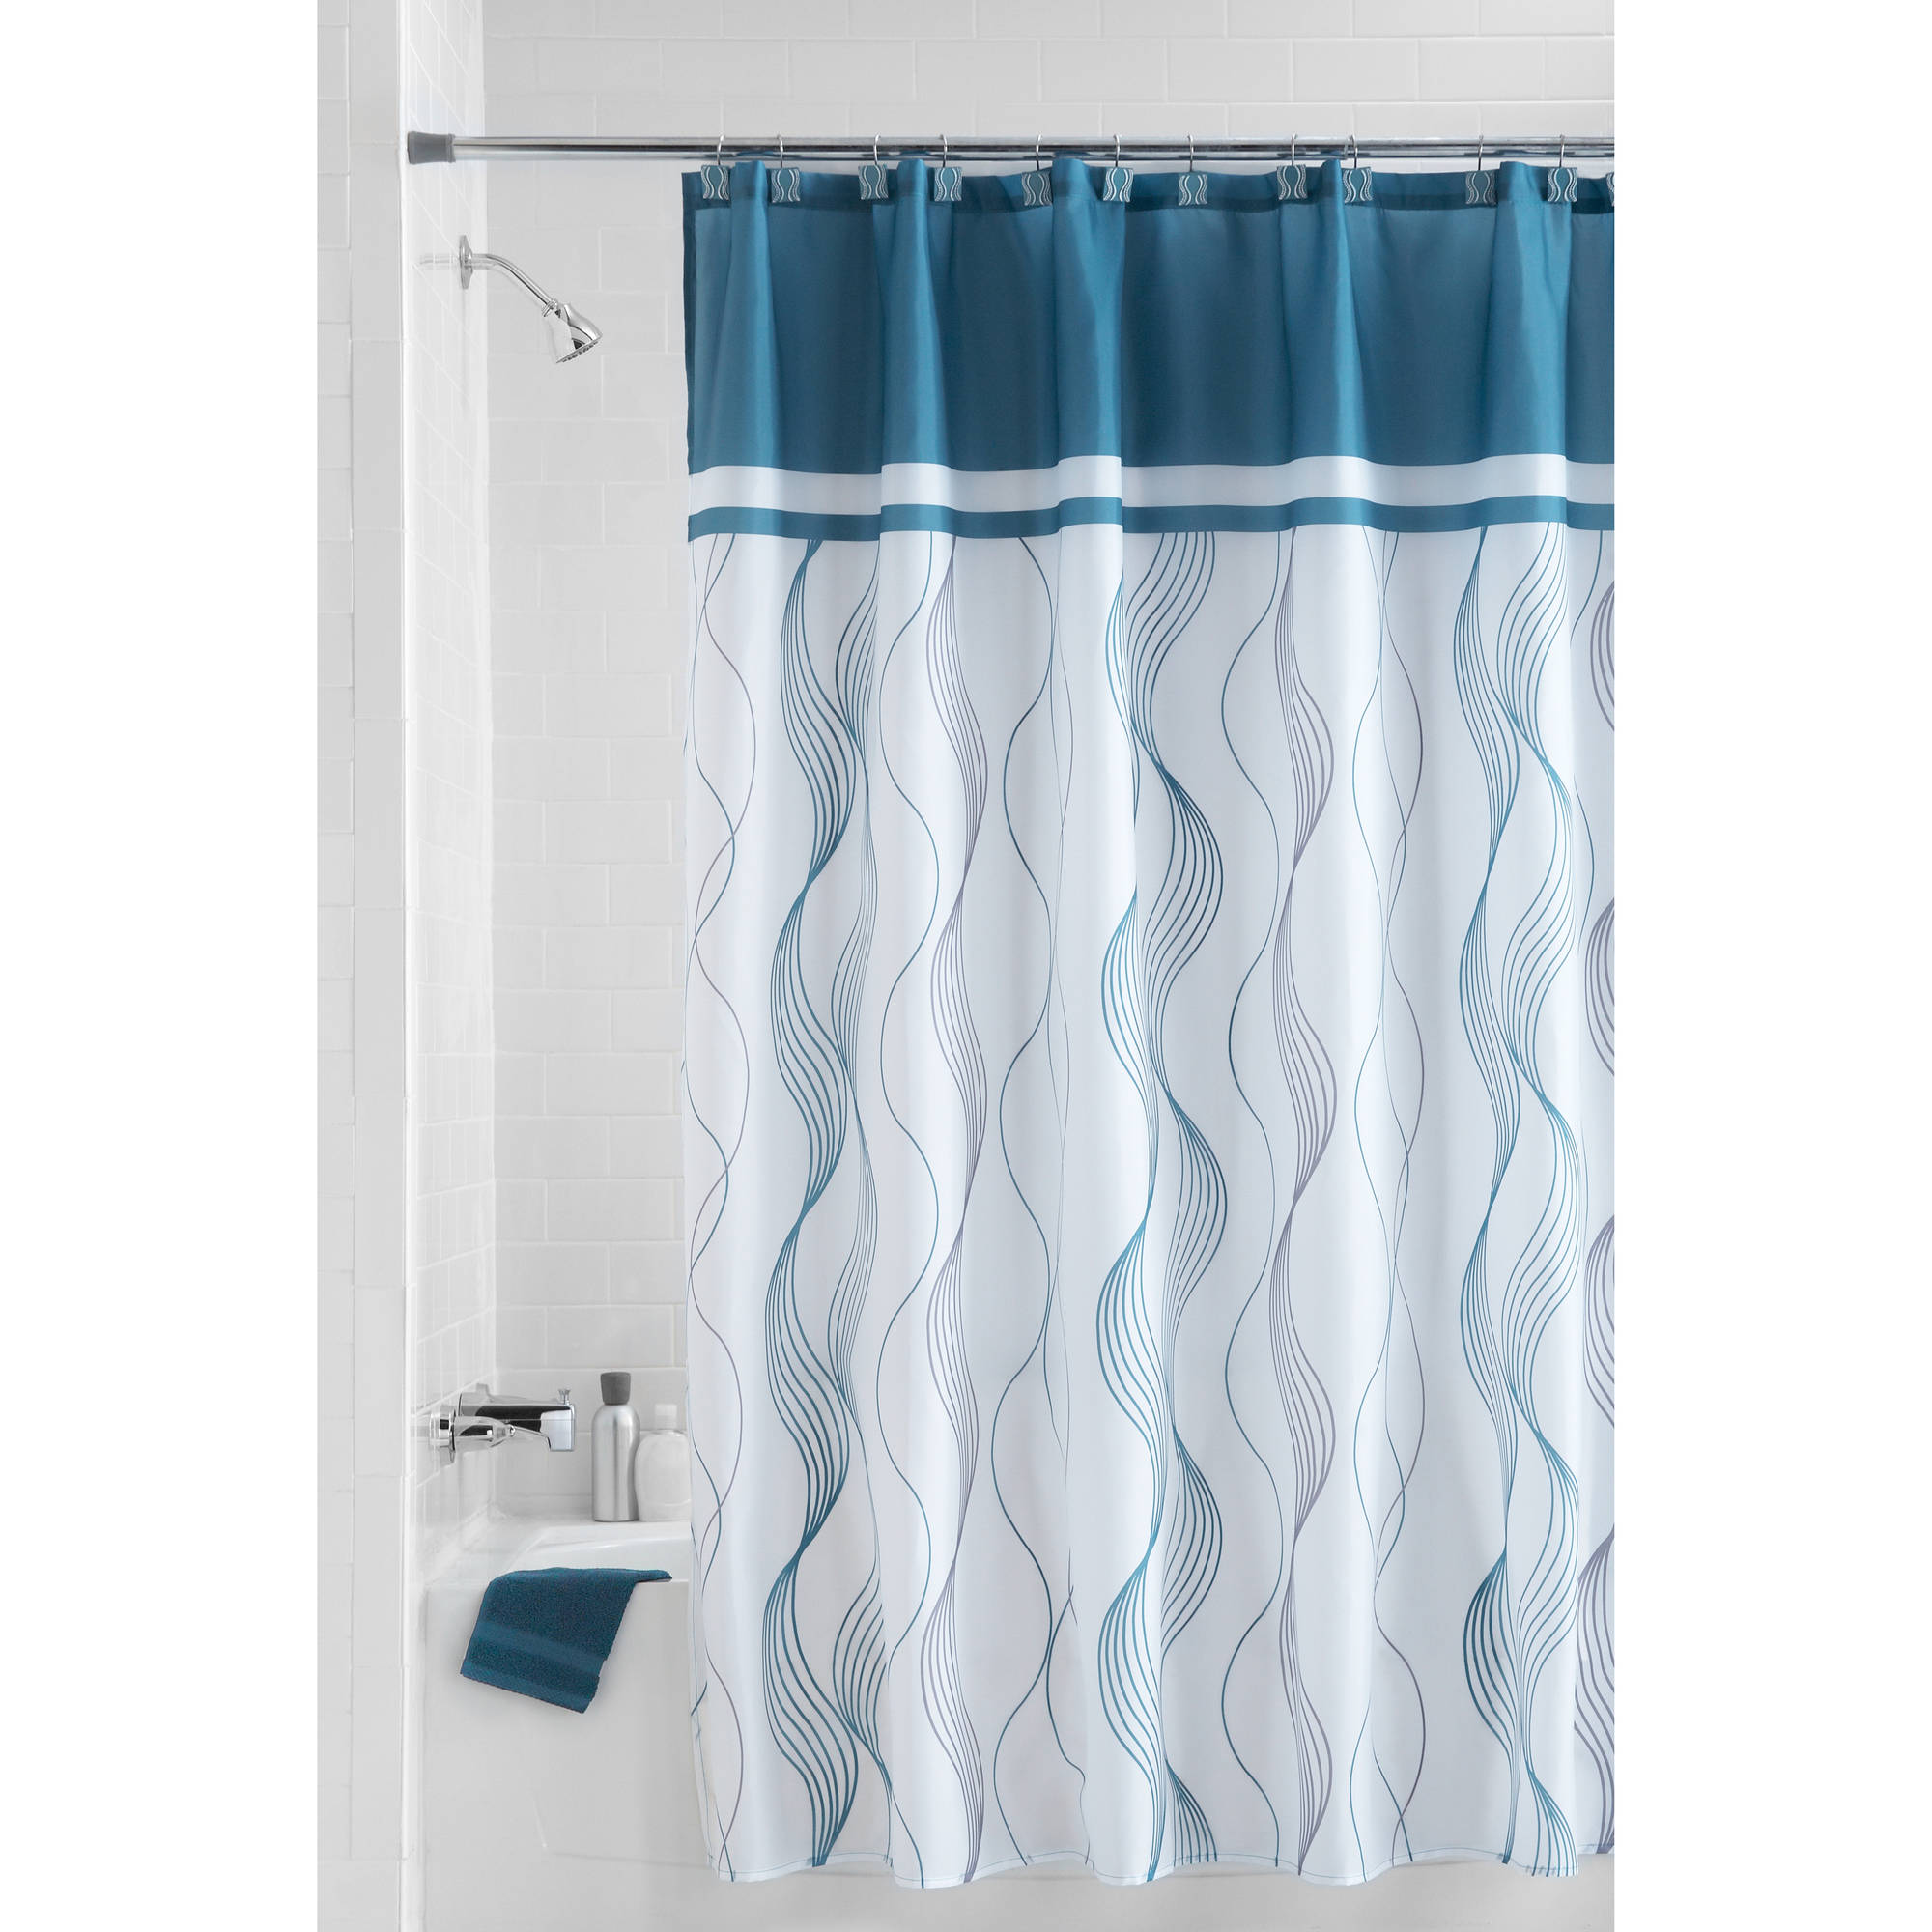 Mainstays 13 Piece Cosmo Shower Curtain And Decorative Hooks Bath Set Multiple Colors Sizes Available